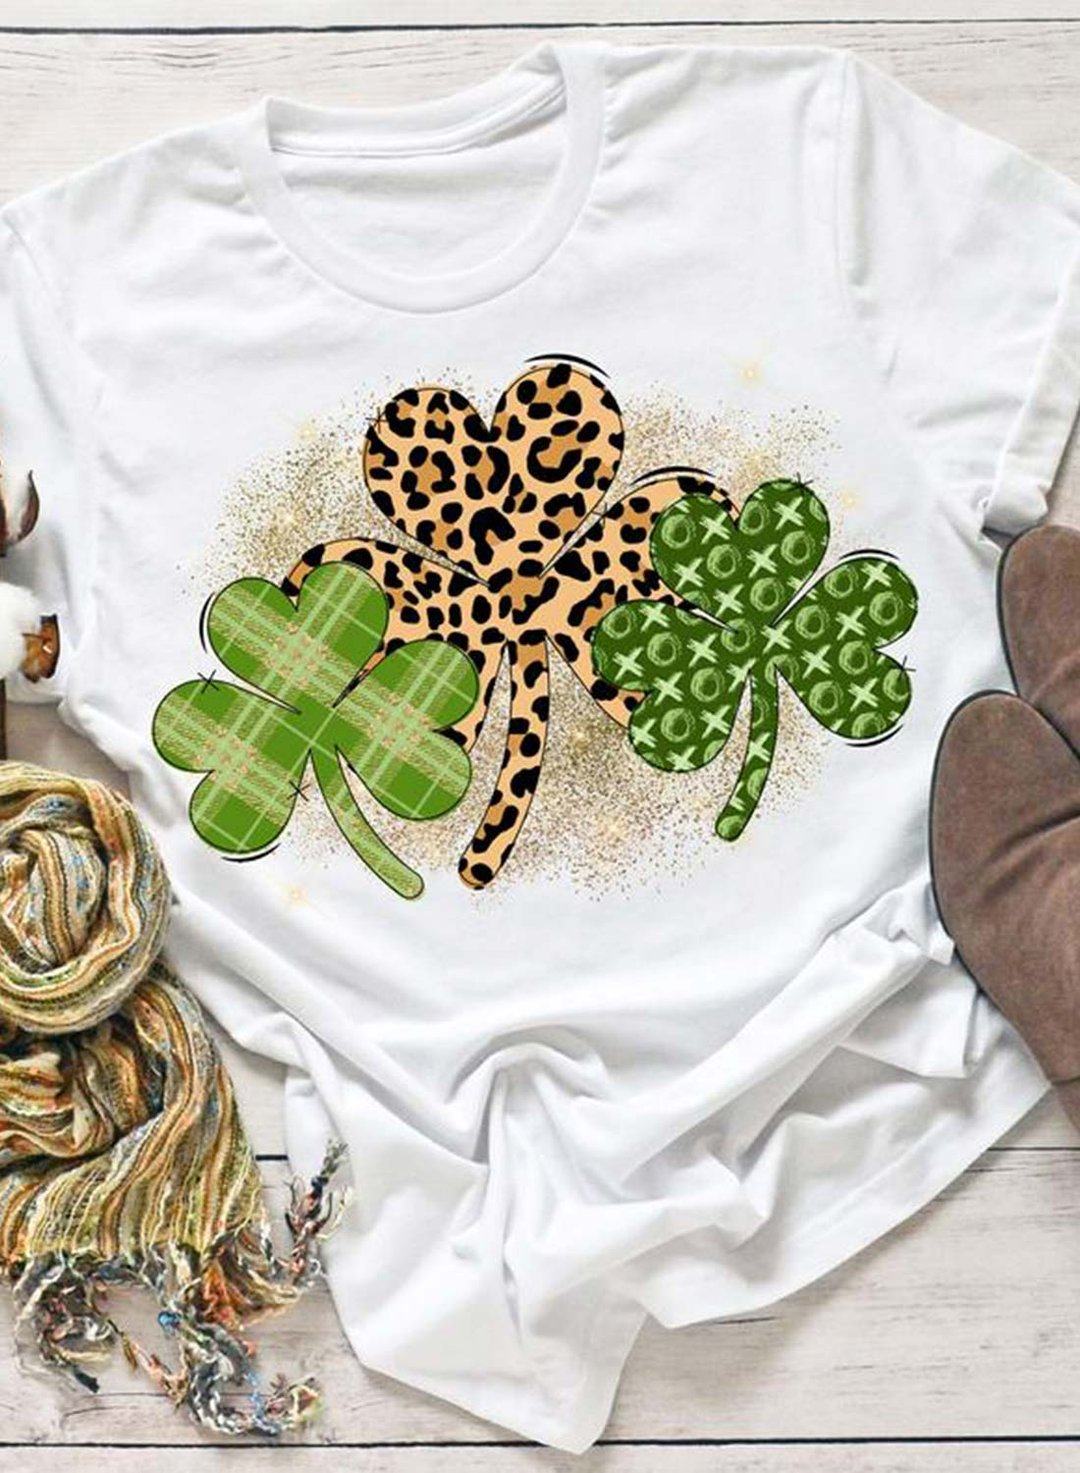 White Women's T-shirts Leopard Plant Round Neck Short Sleeve Daily Casual T-shirts LC2523765-1